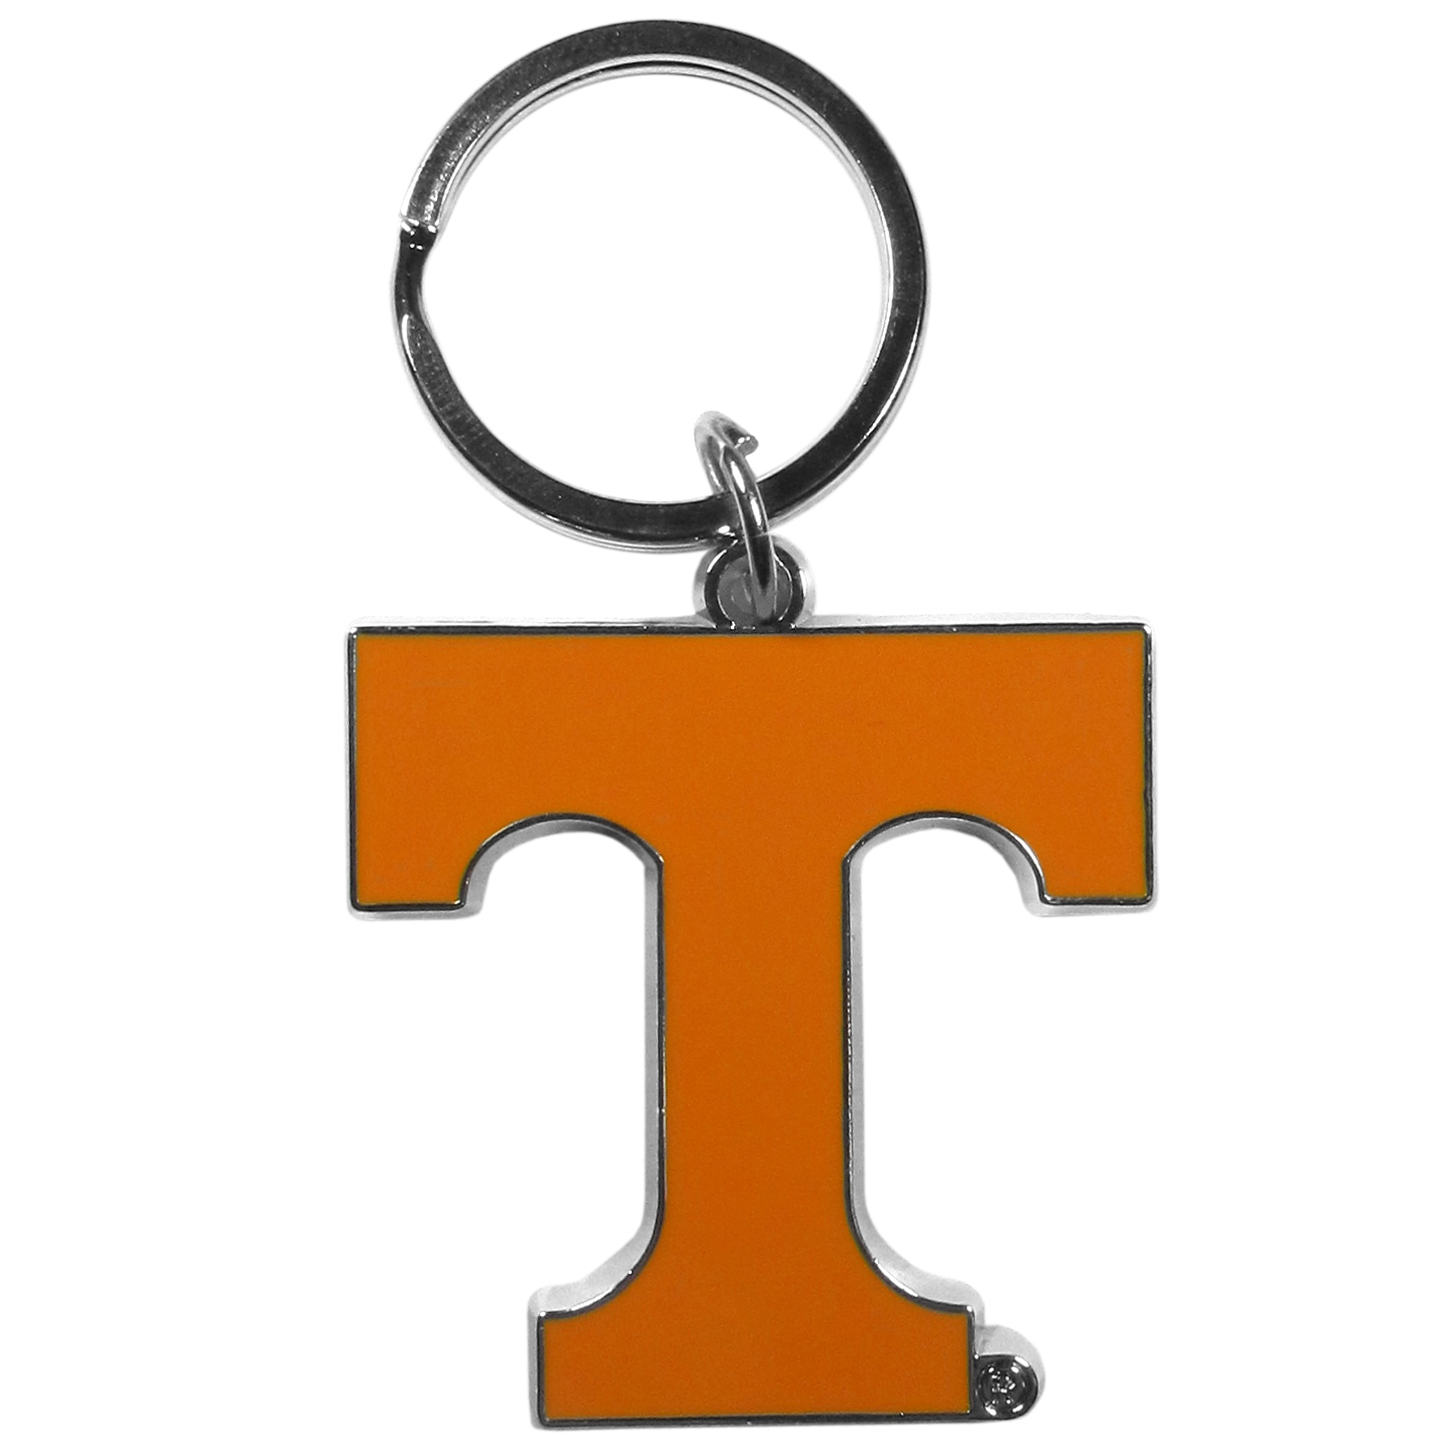 Tennessee Volunteers Enameled Key Chain - Our officially licensed chrome key chain have exceptional 3D detail that really sets this key chain apart from other Tennessee Volunteers key chains. The logo is finely carved and enamel filled with a high polish chrome finish.